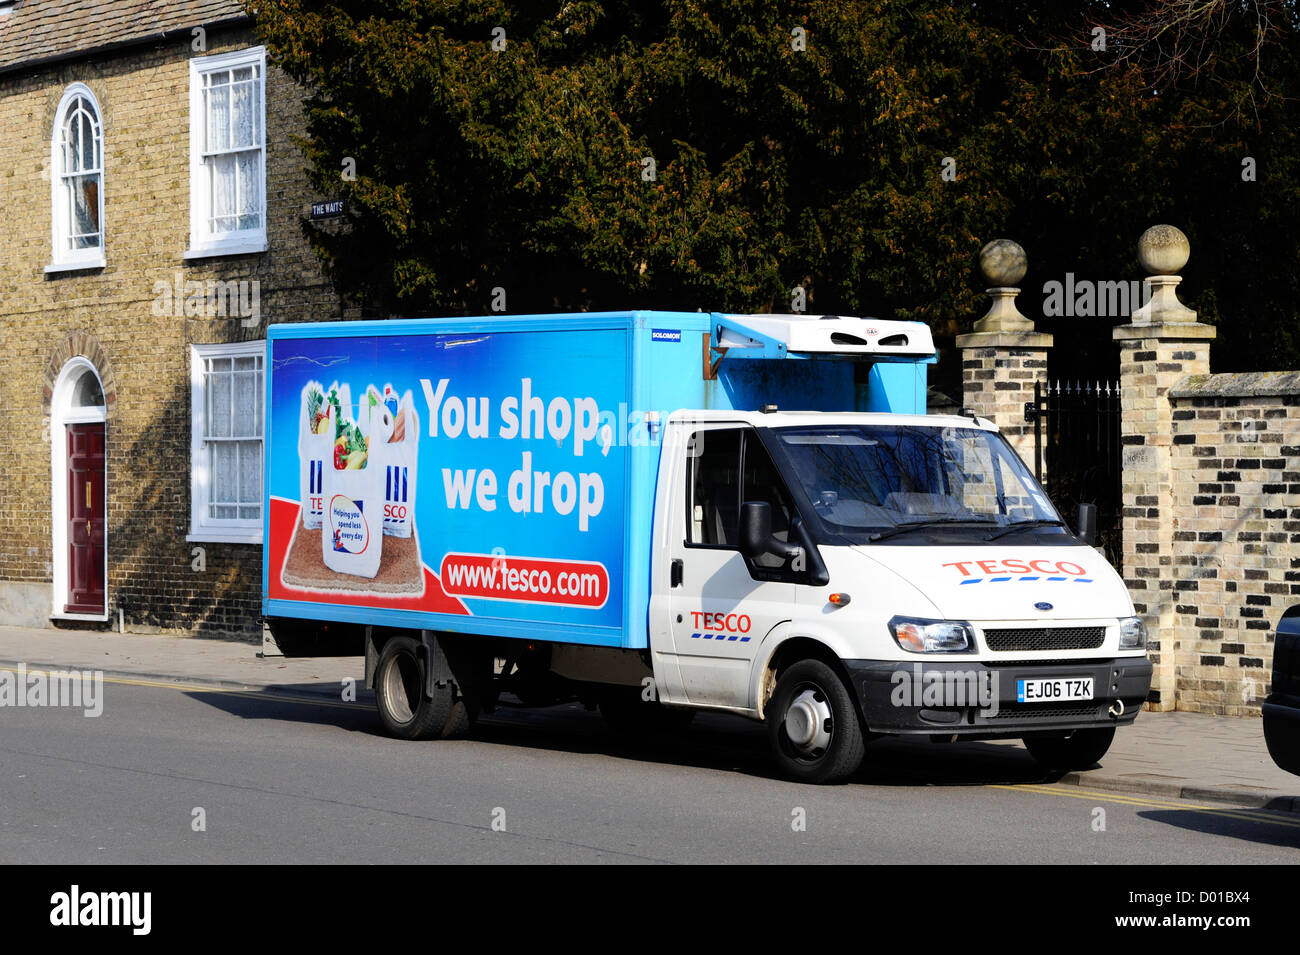 Tesco home delivery van in St Ives, Cambs. Stock Photo